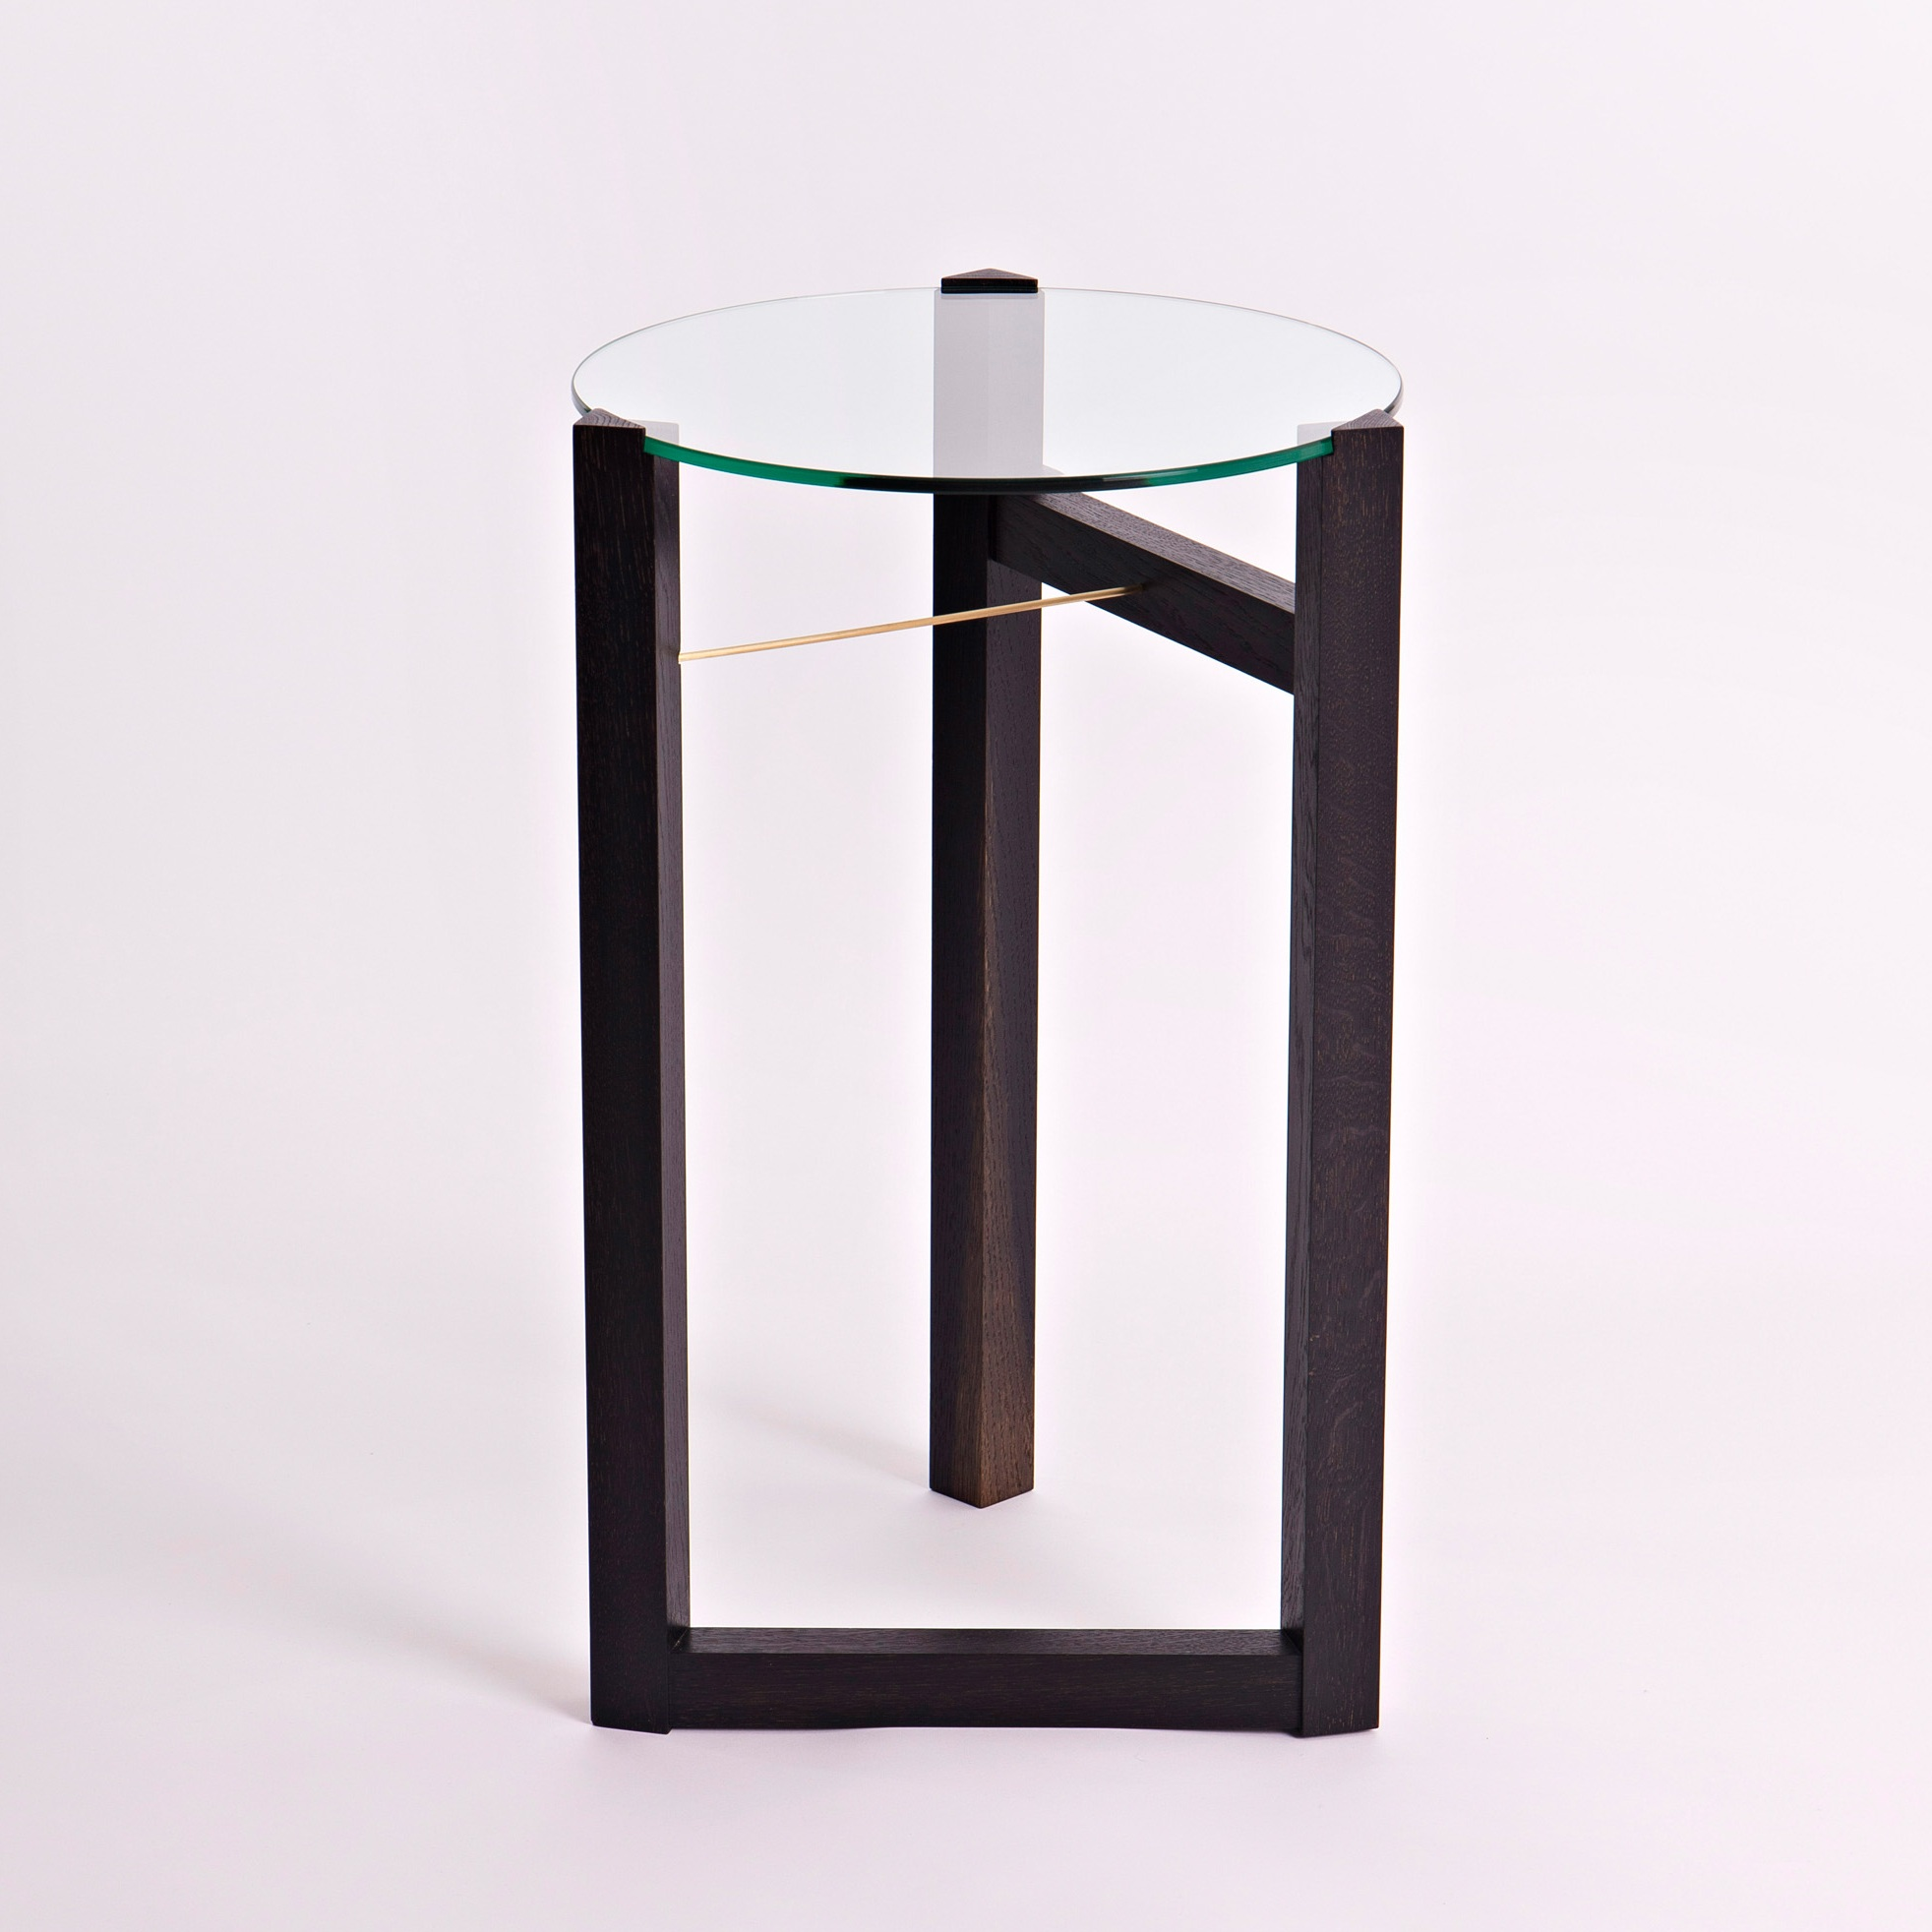 trigonon-side-table2_colinharris.jpg